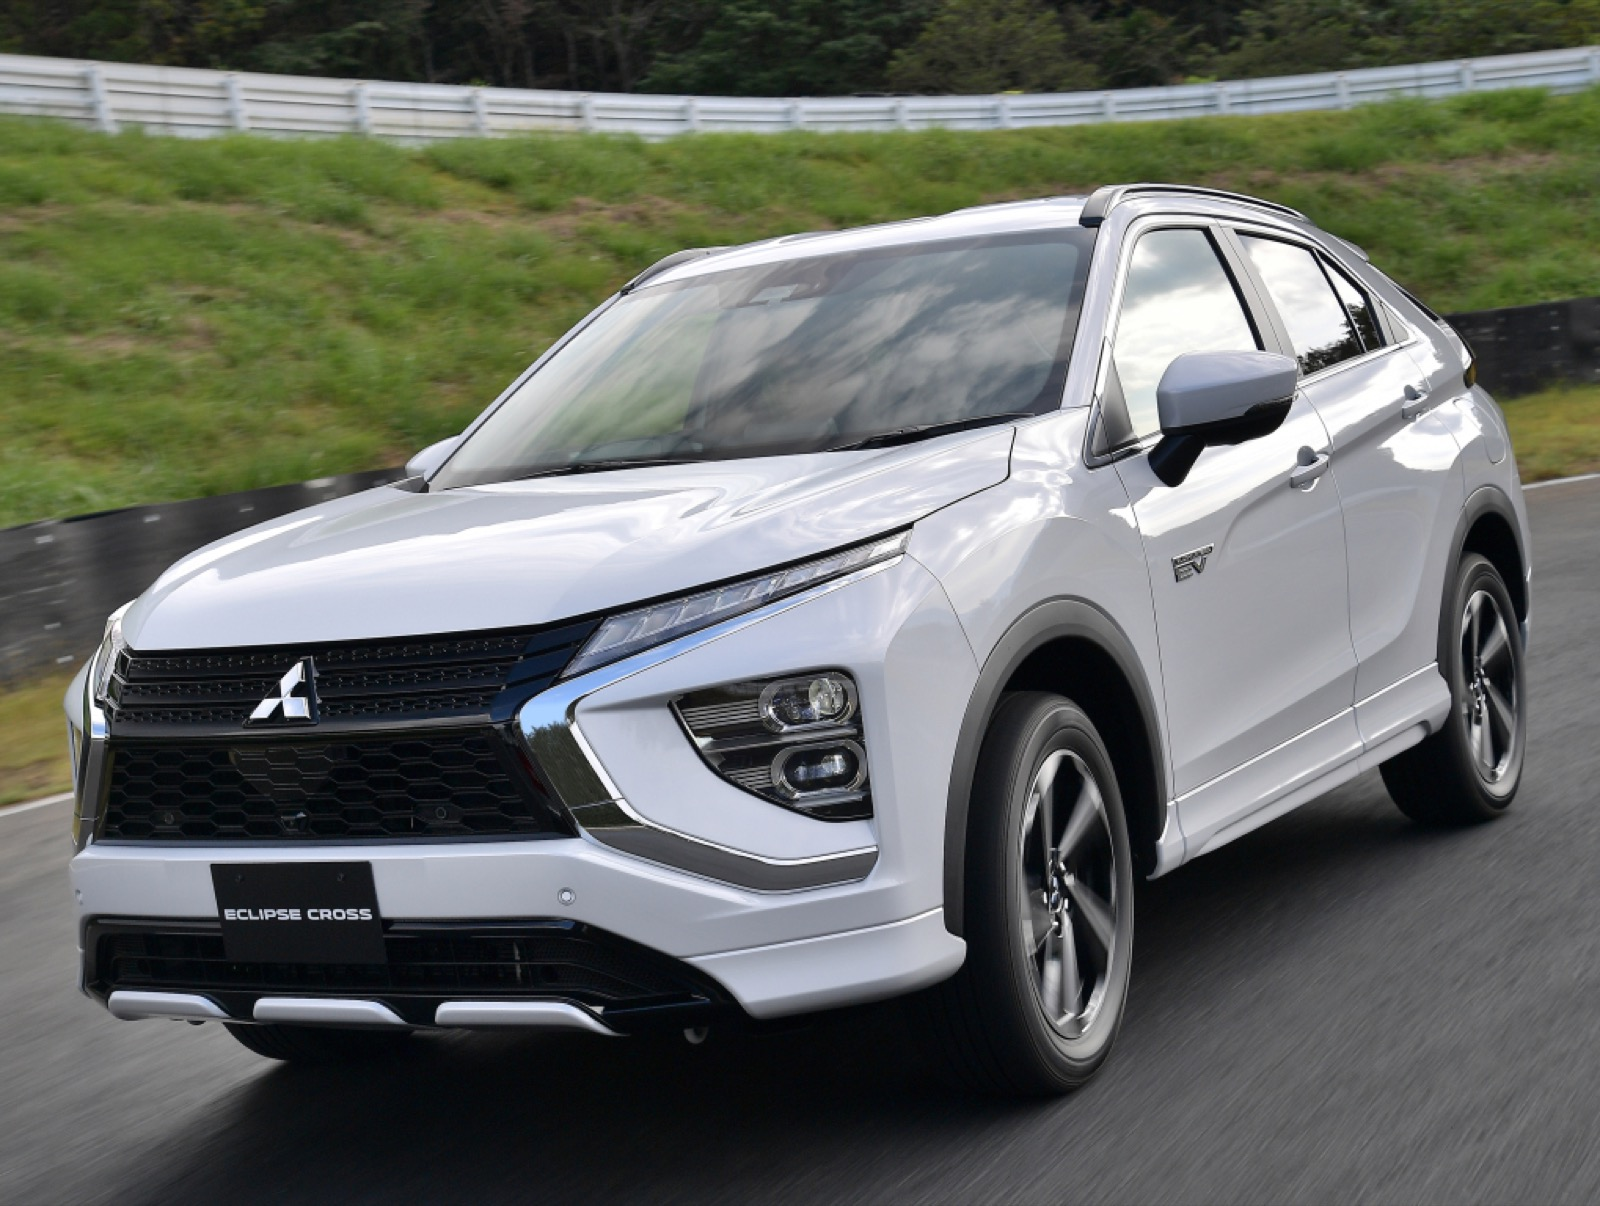 msubishi-eclipse-cross-phev-2020-3